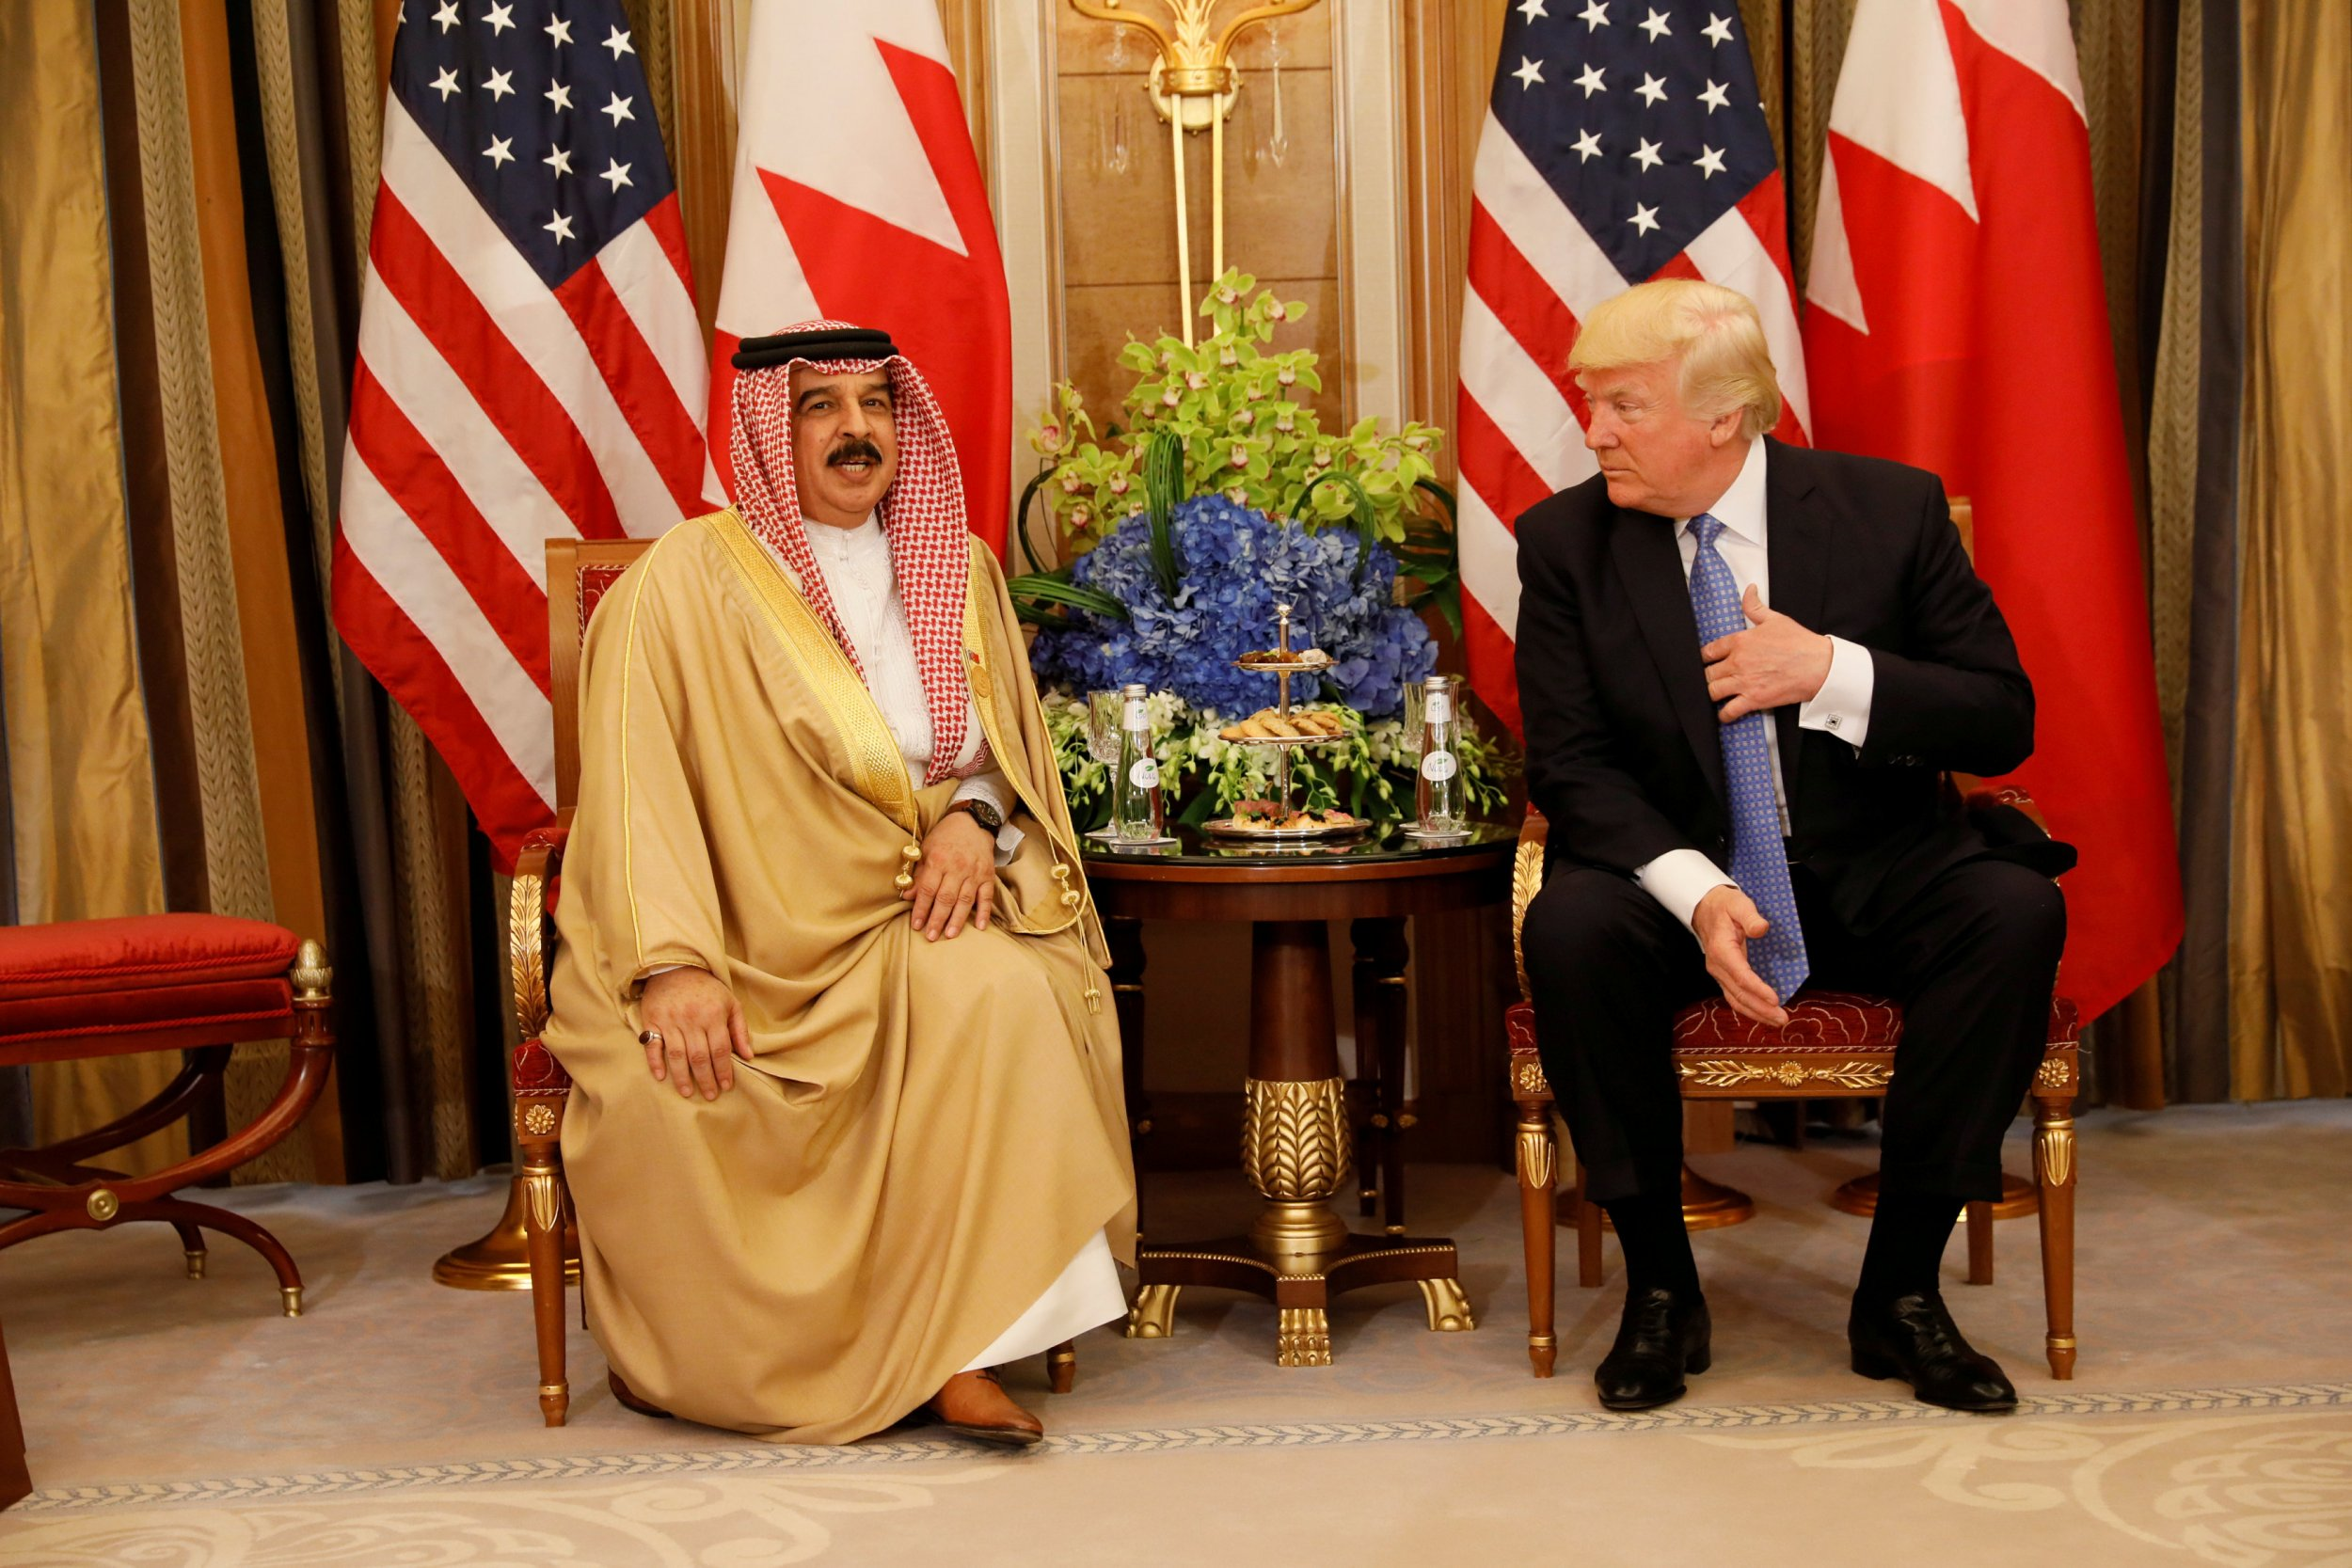 Bahrain's King Hamad bin Isa Al Khalifa and Donald Trump